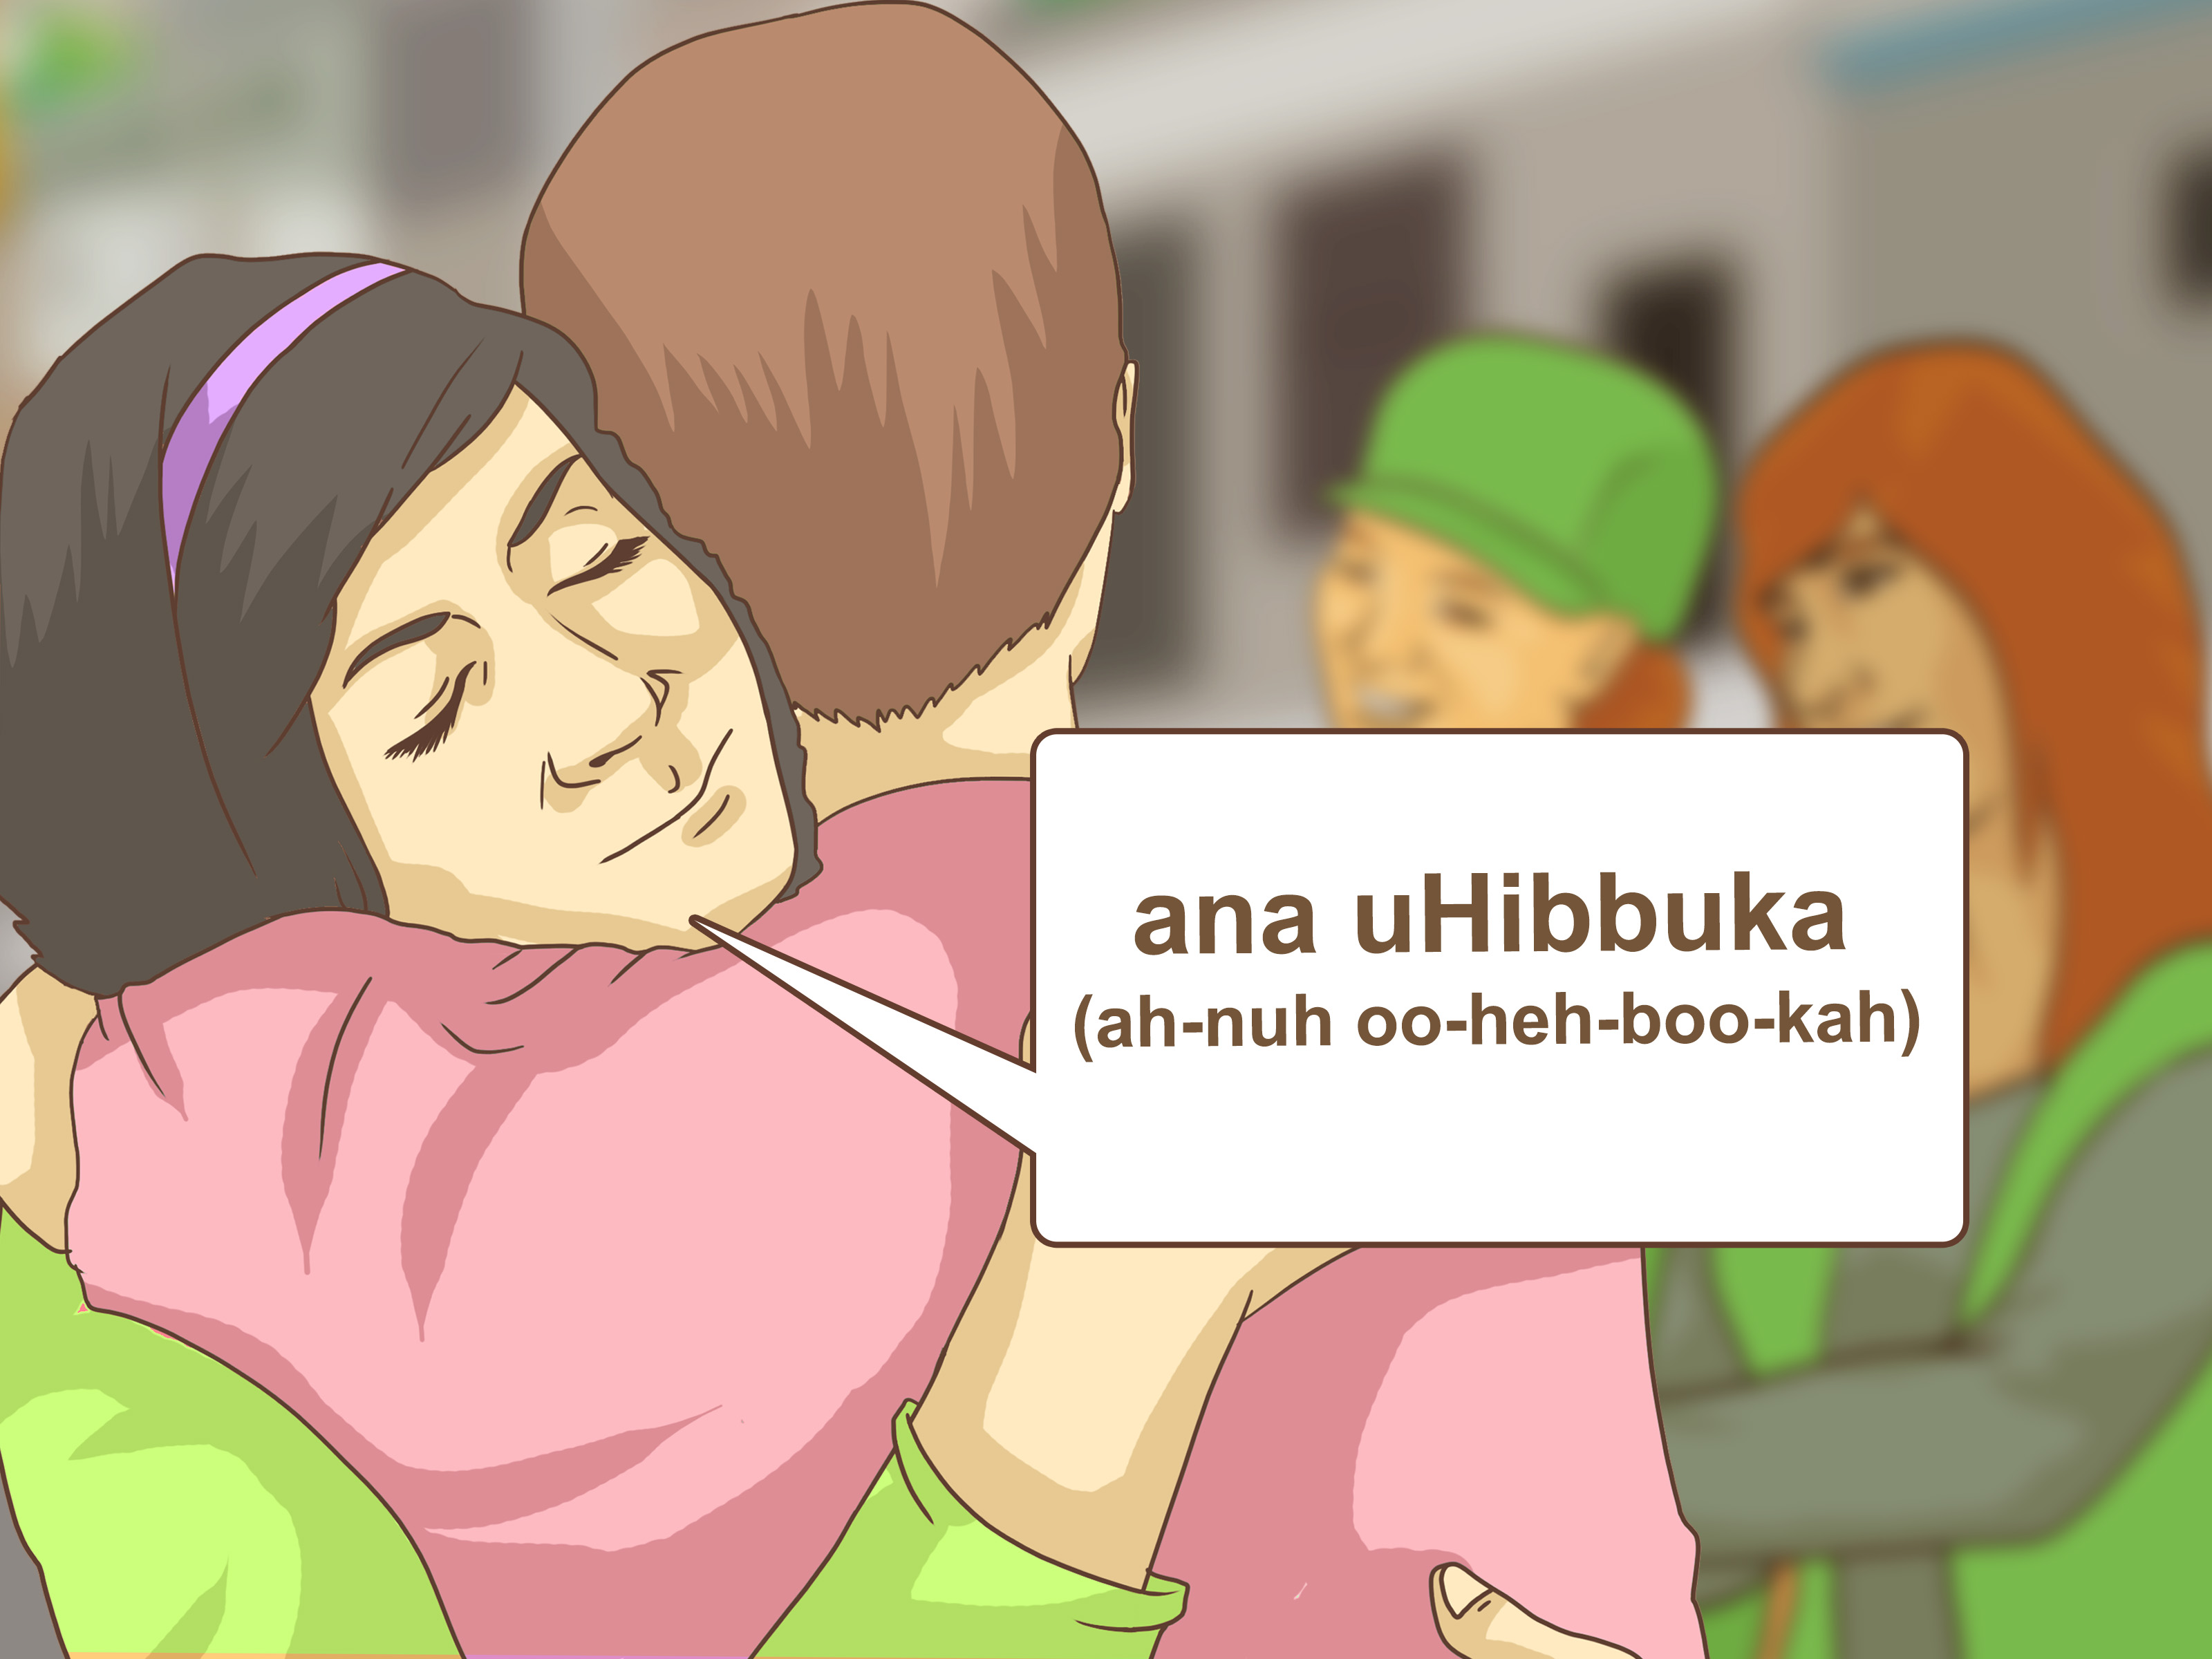 How To Say I Love You In Arabic Love You Meaning In Arabic